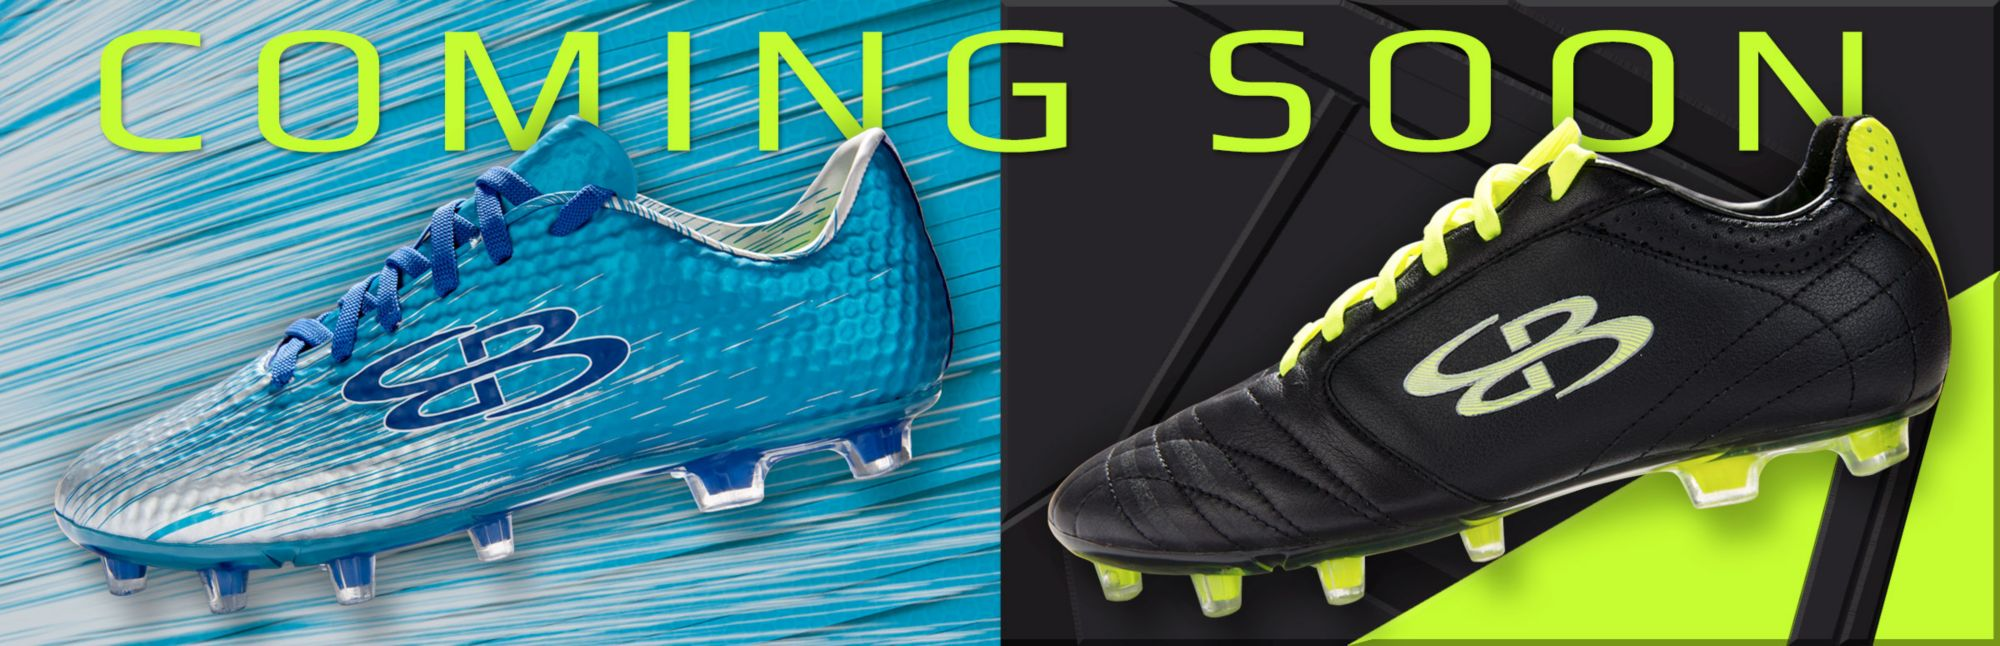 New Soccer Cleats Coming Soon